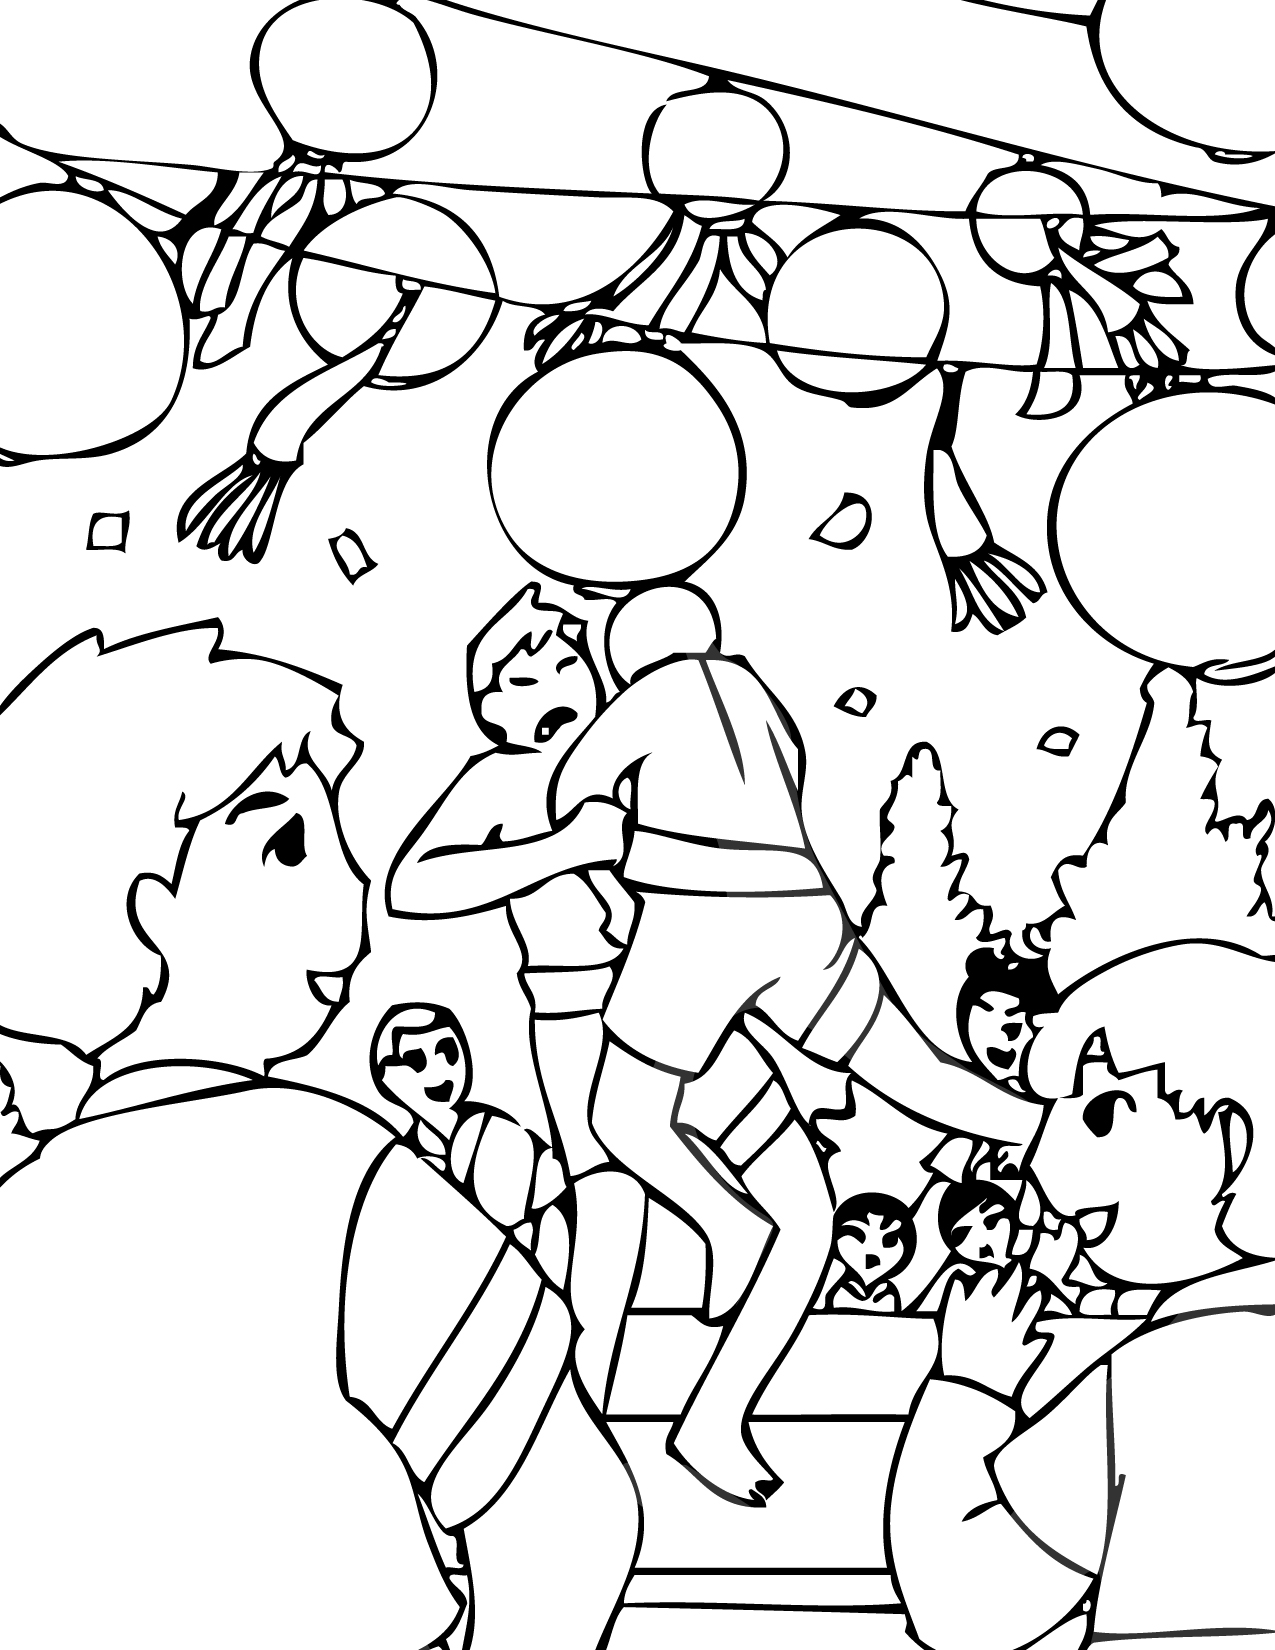 dano coloring page handipoints